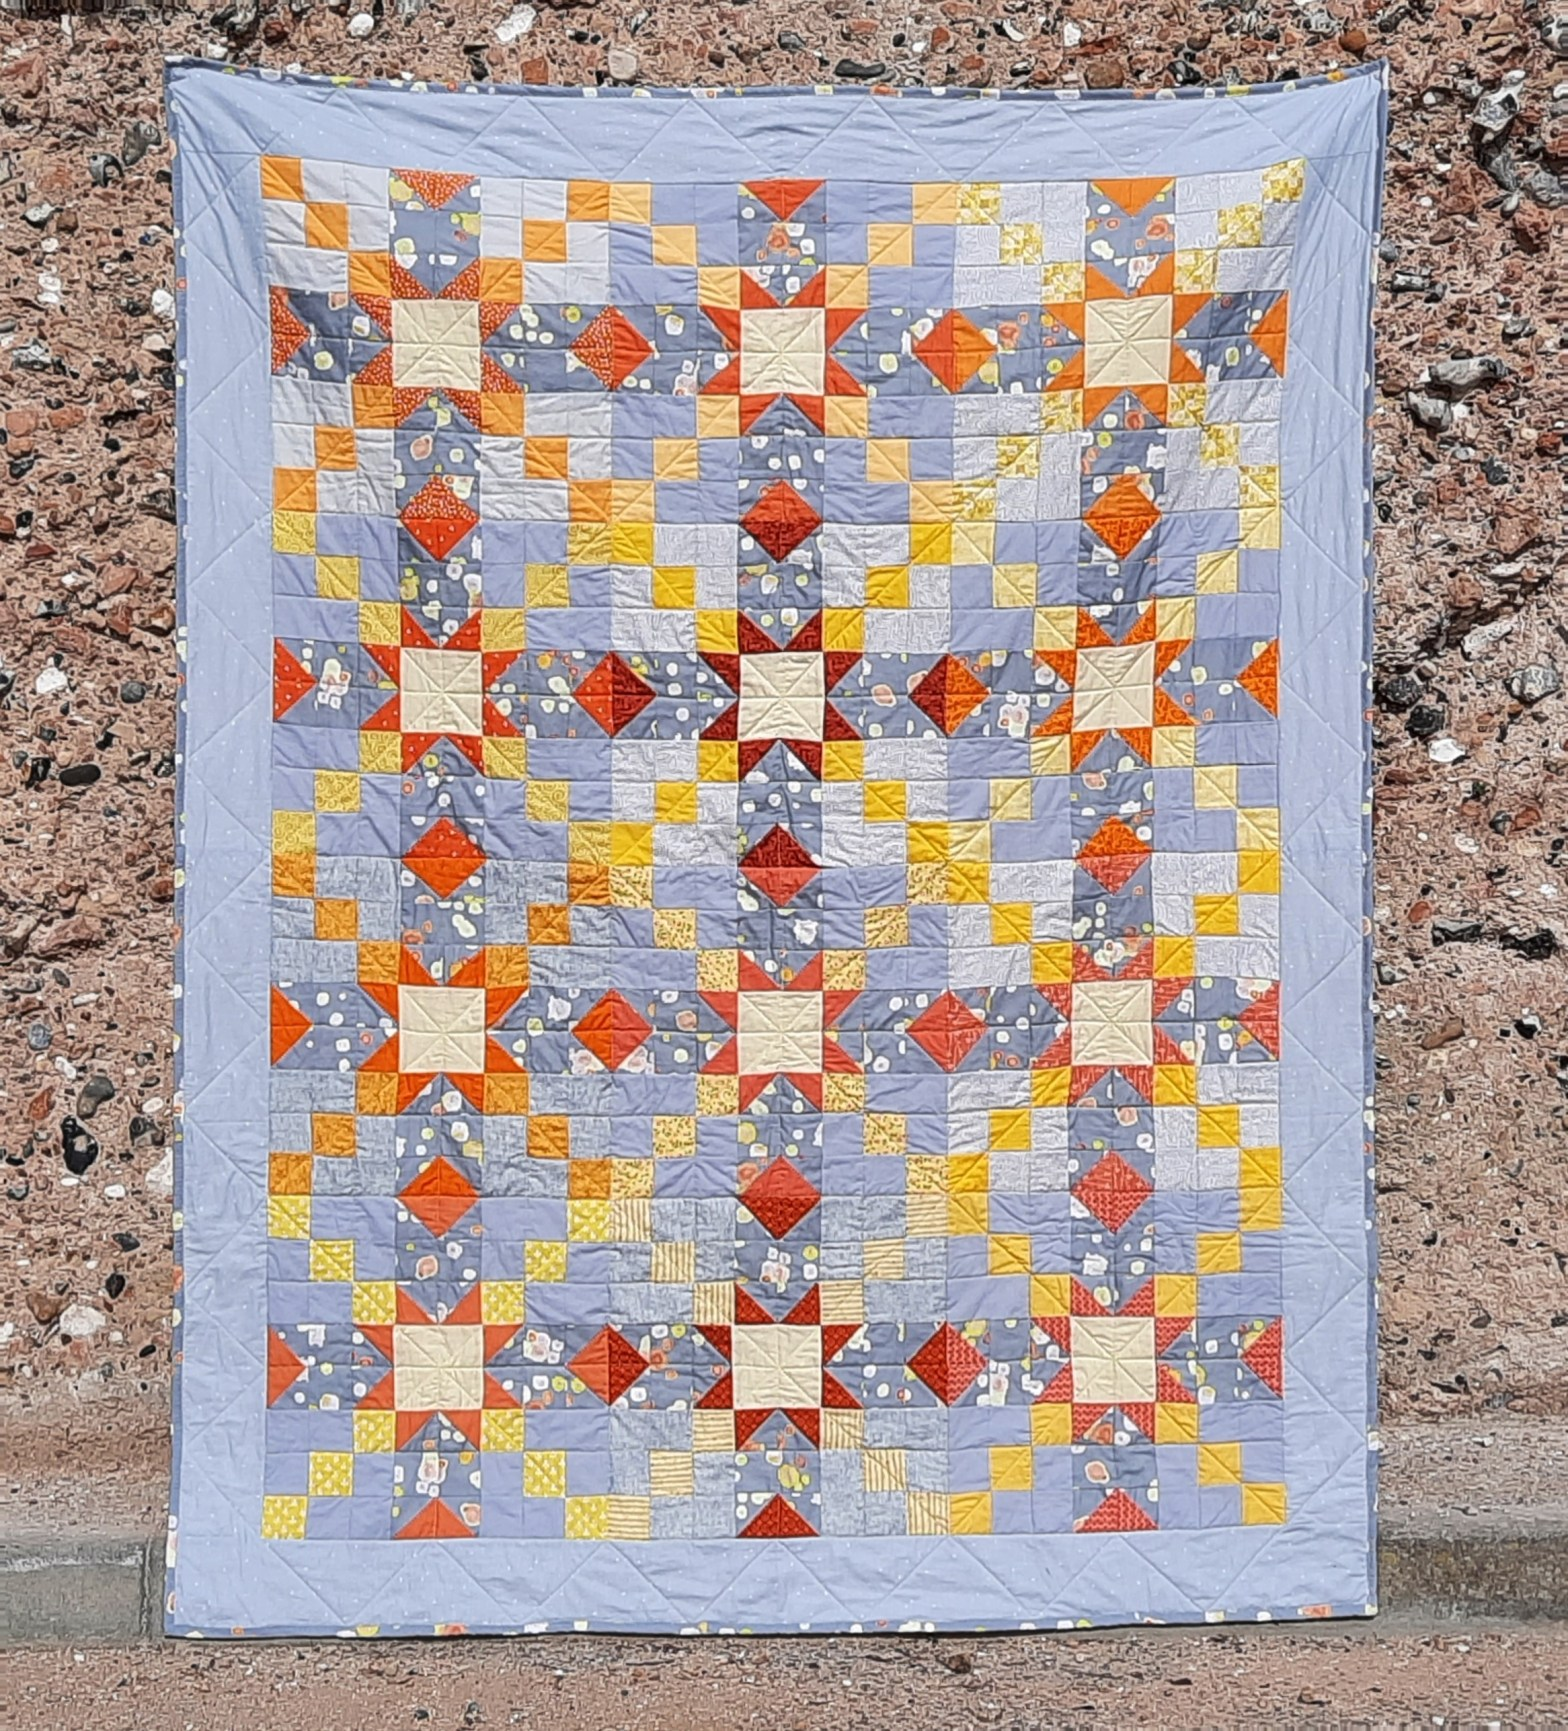 'Starstruck' quilt by Amanda Jane Textiles, the quilt contains twelve star blocks with pale yellow centres and orange arms, each of these lead out with a burst of yellow squares to the next one. The feature fabric around the stars is 'Micro-organisms' by Amanda Jane Textiles on Spoonflower. Other squares are pale grey and there is a light grey border.